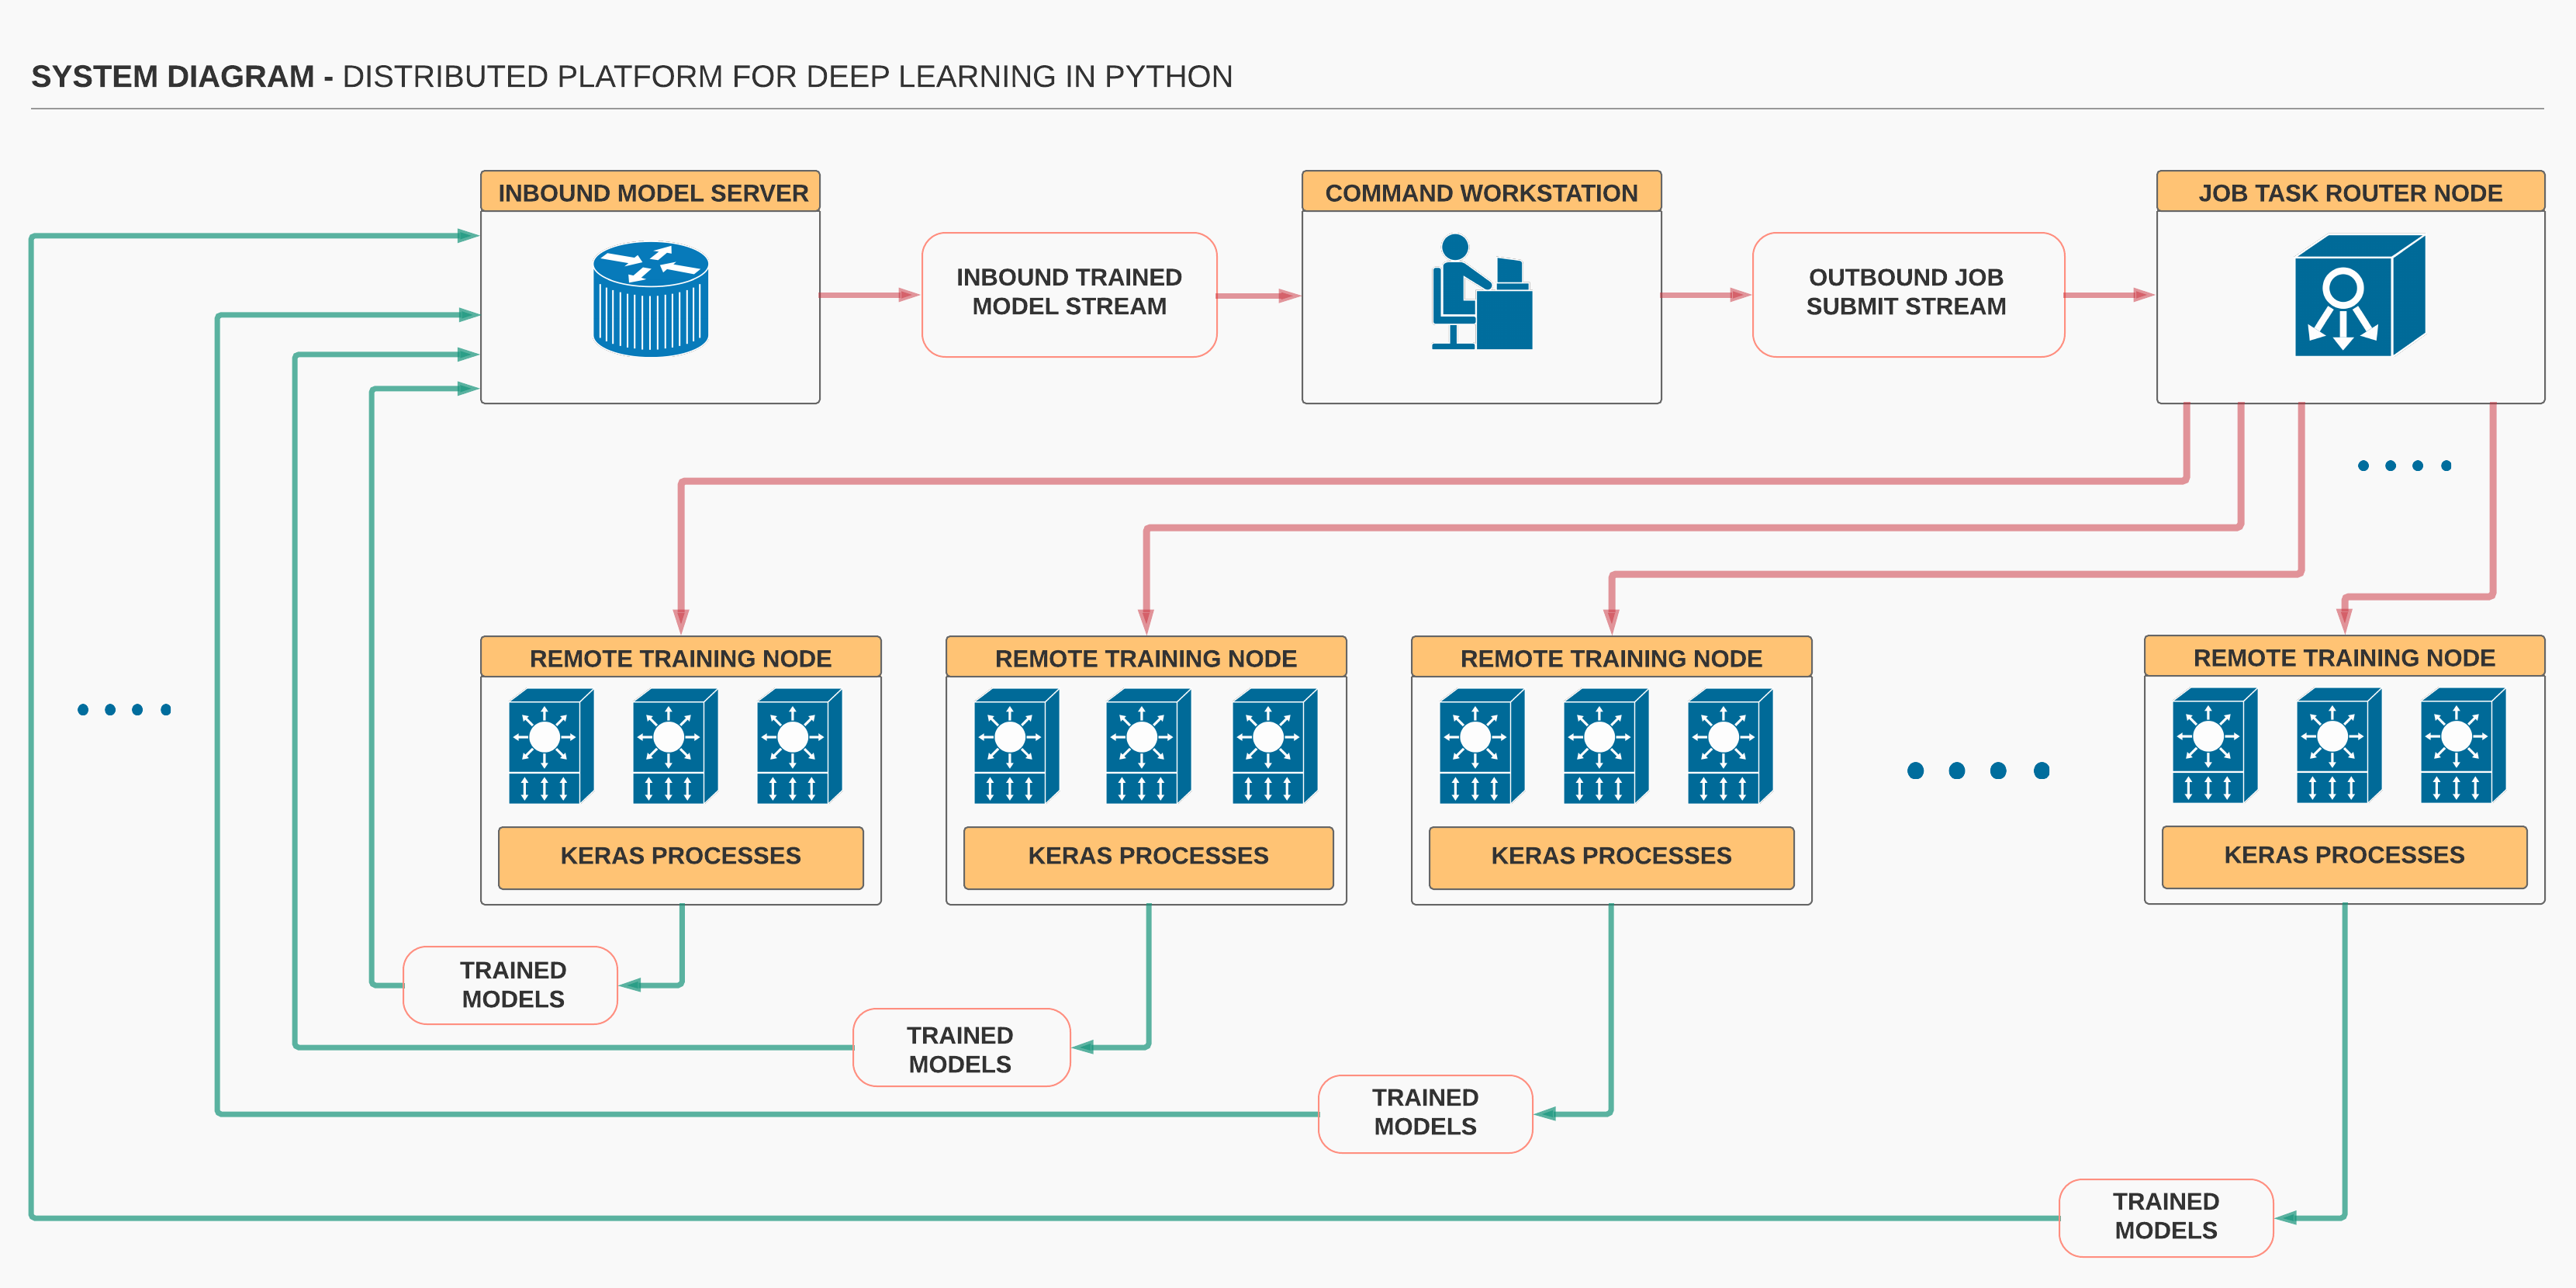 Distributed Software Platform for Deep Learning in Python